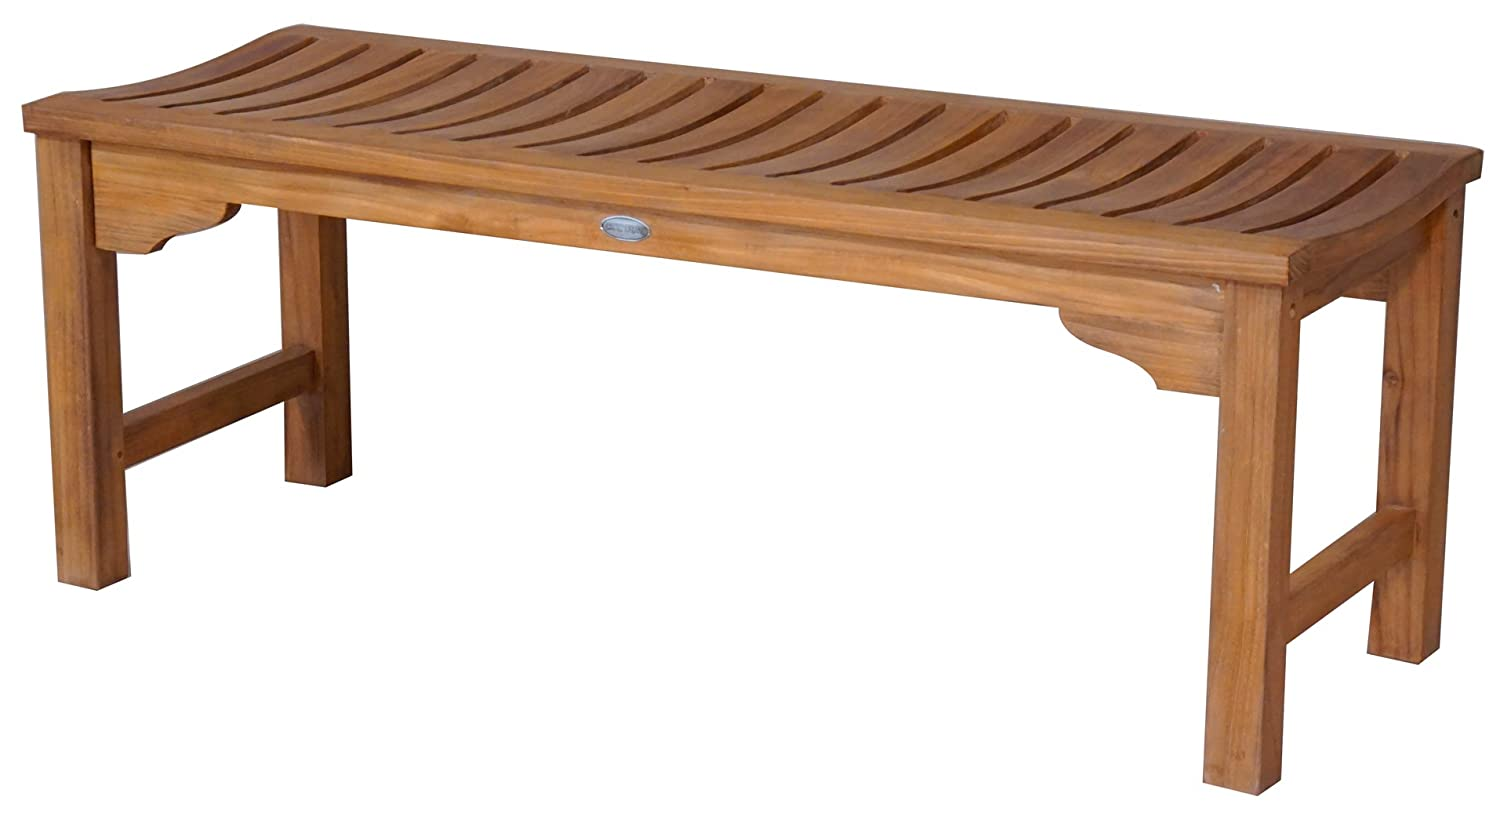 Amazon Com Teak Santa Monica Backless Bench 4 Foot Made From